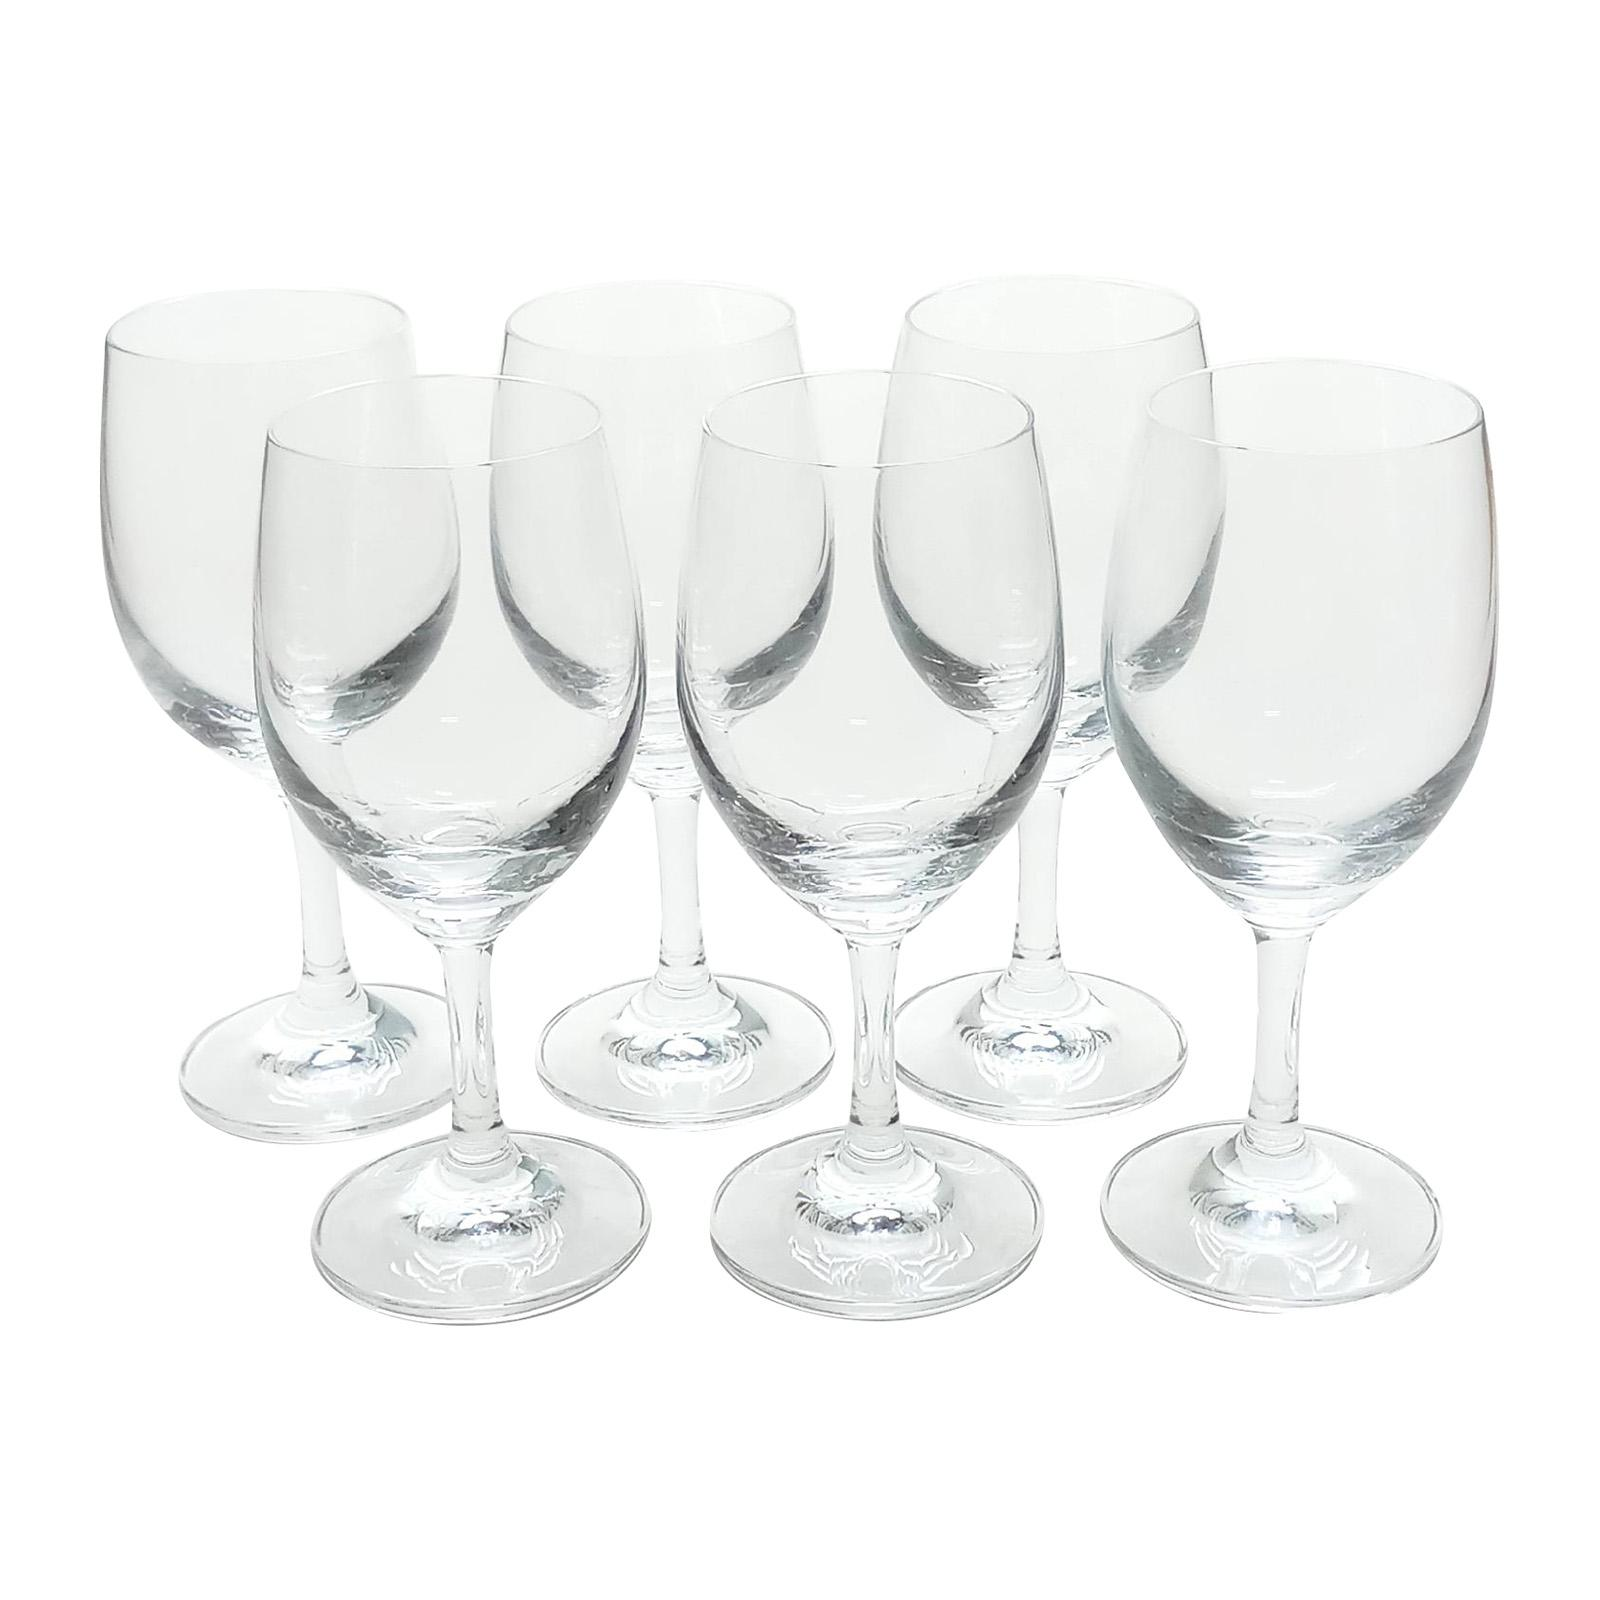 Vesta Lead-Free Crystal Wine Glass 12 CL (6 PCS)